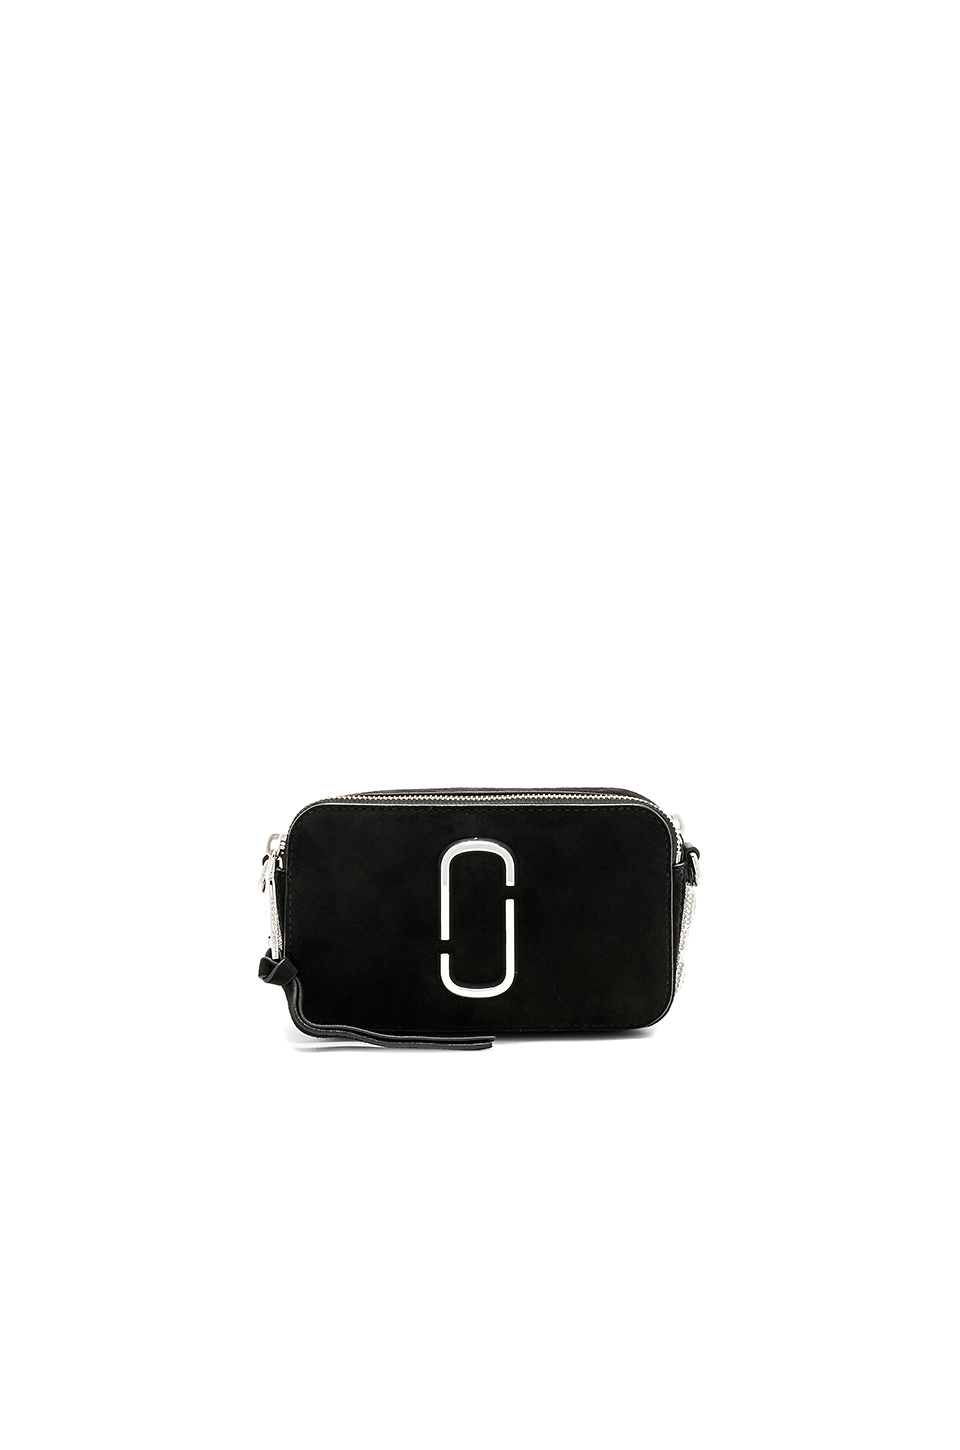 Marc Jacobs Snapshot Pave Chain Camera Bag in Black